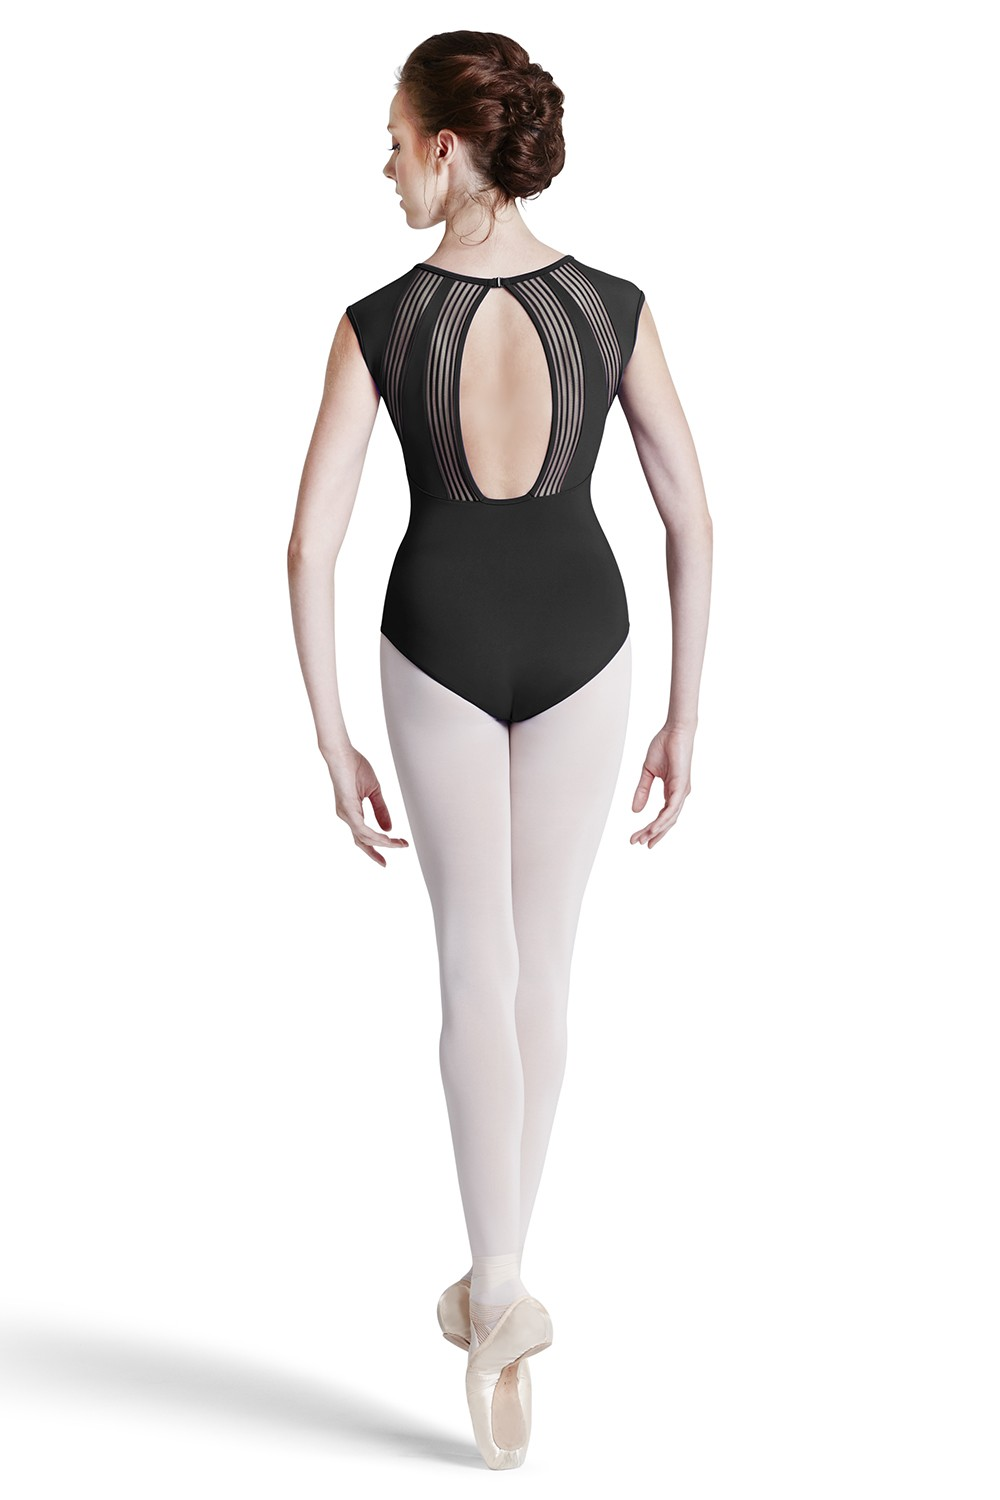 Découpe Serrure Au Dos Capslive Womens Short Sleeve Leotards